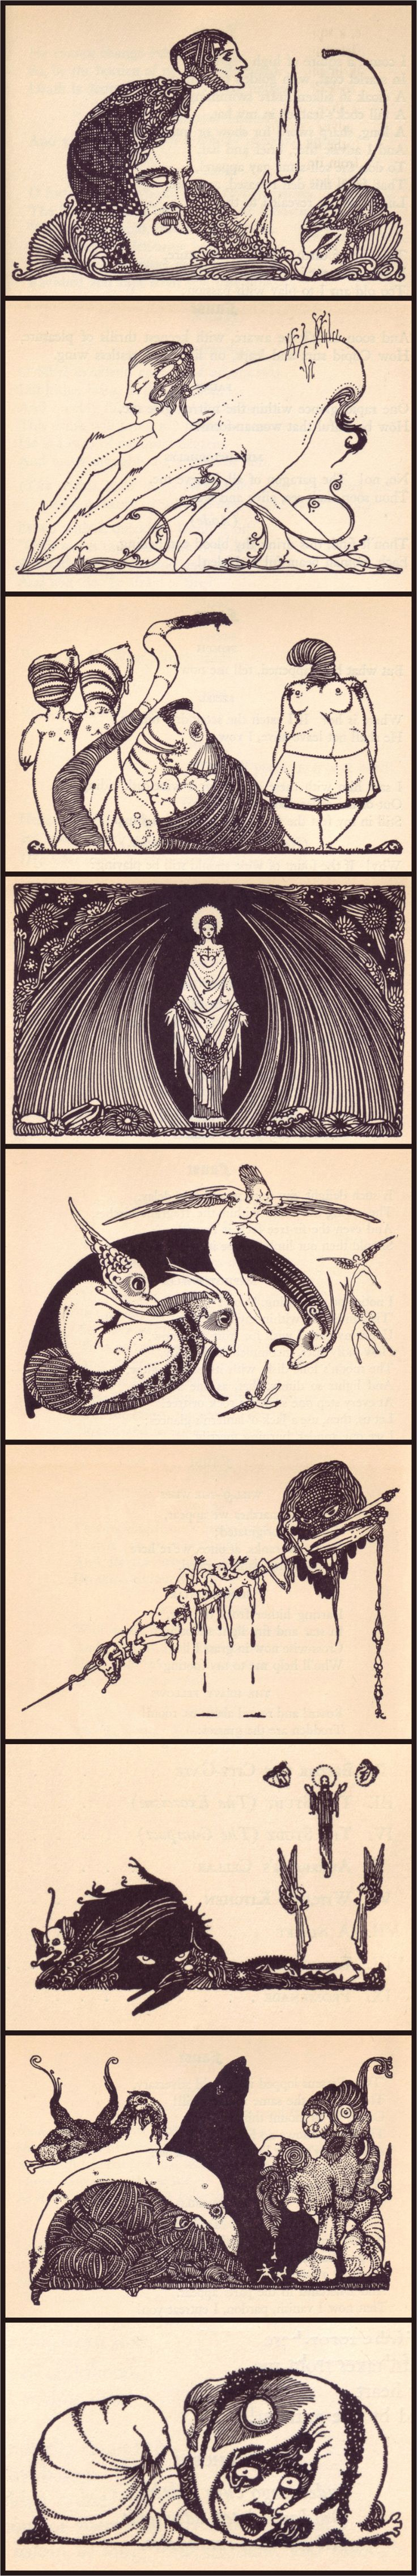 best ideas about goethe s faust zitate german illustrations by harry clarke for a 1925 edition of goethe s faust